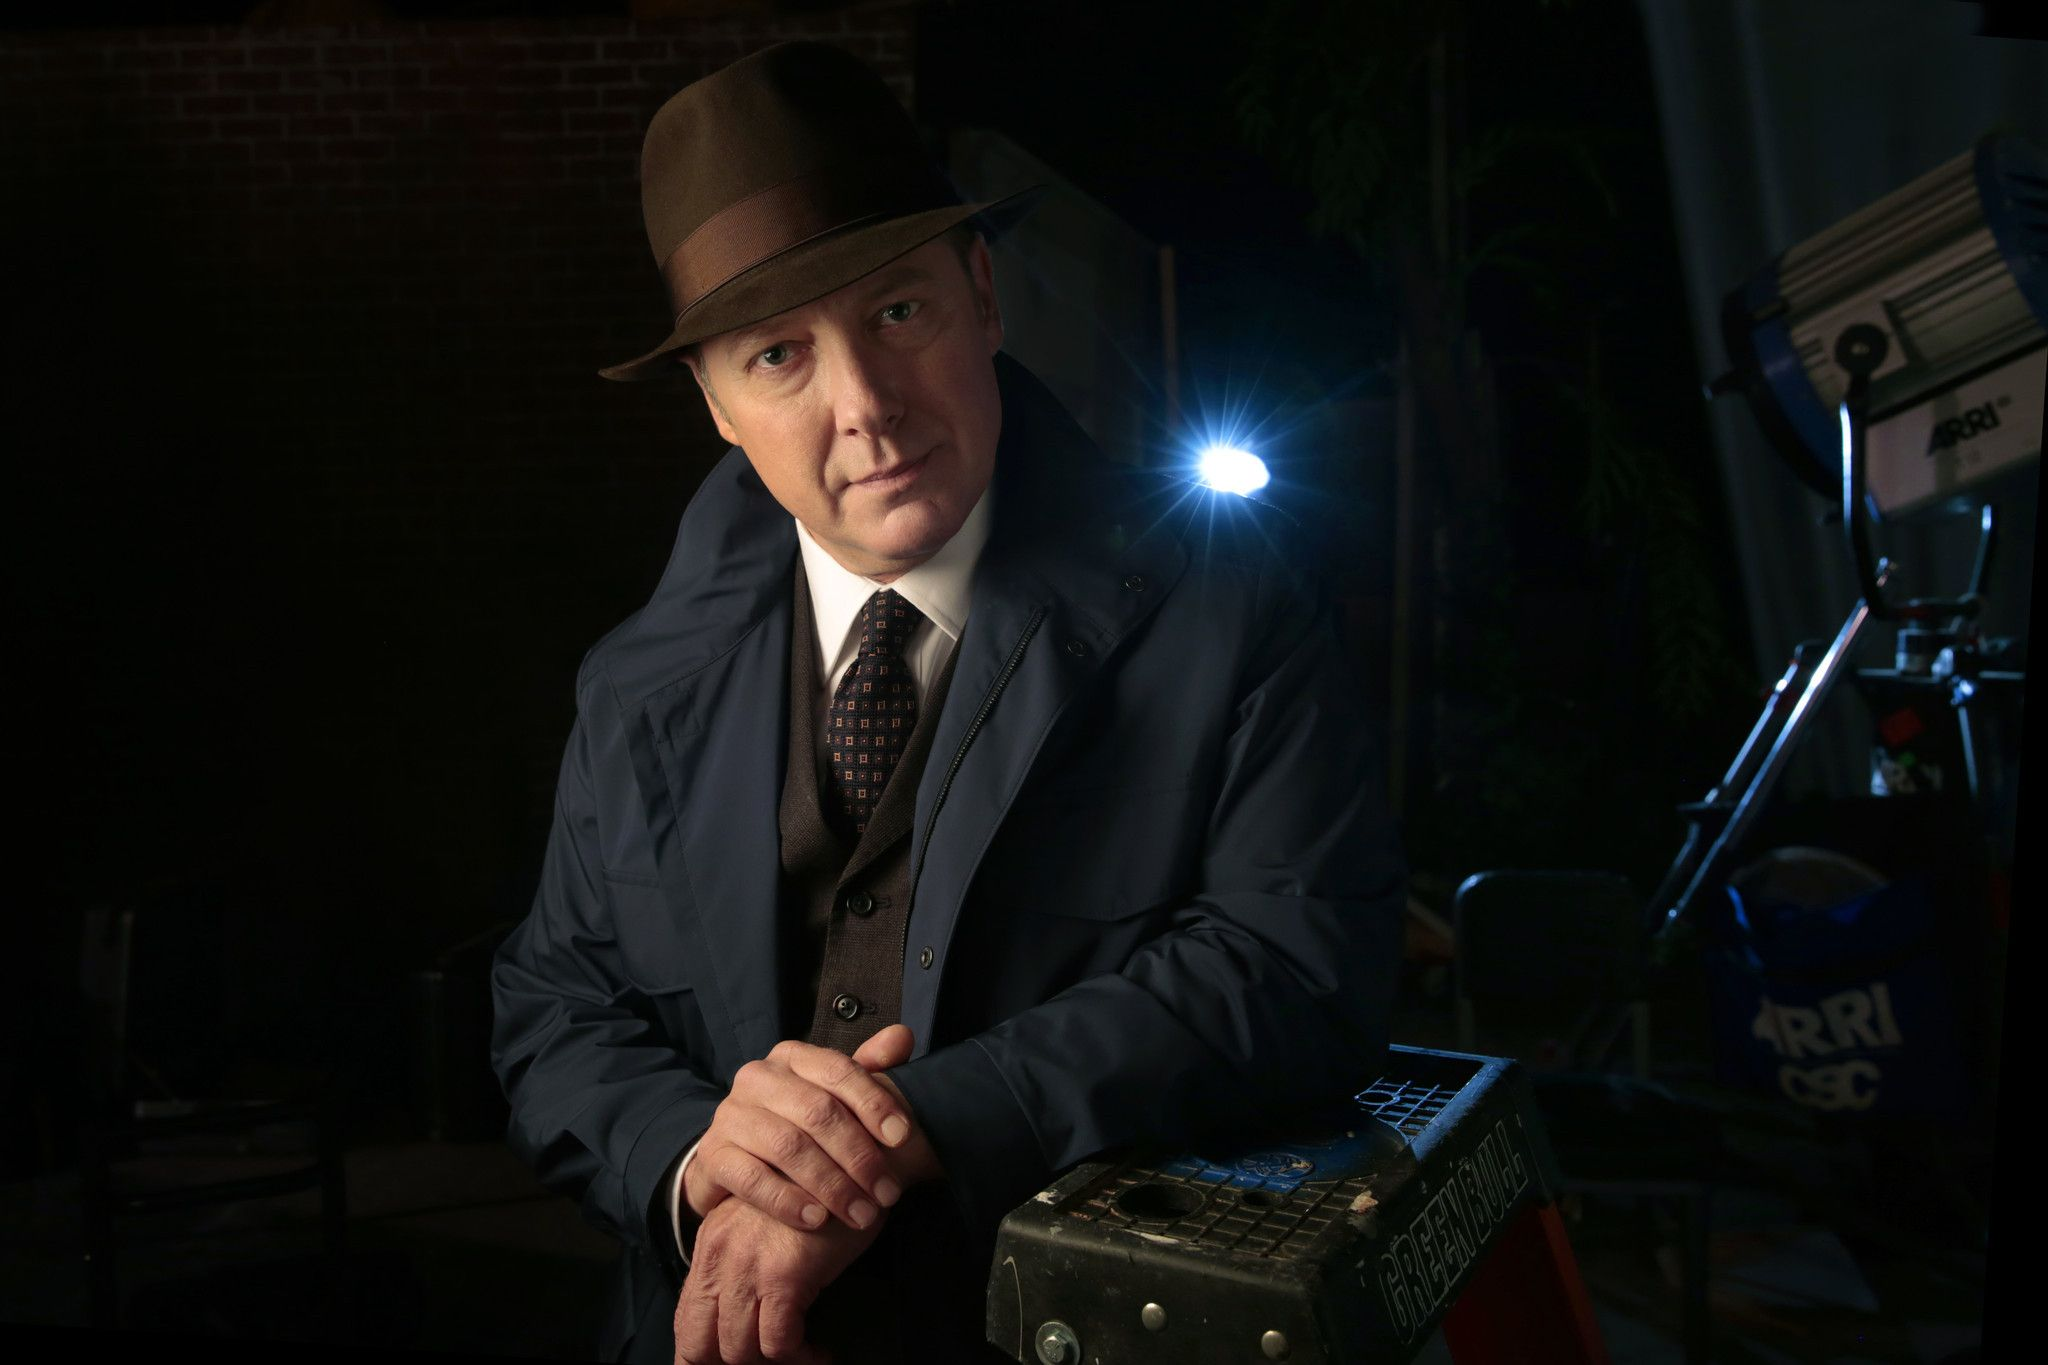 James Spader The Odd Man In Adds The Blacklist To His Roles All Is Red On The Blacklist 映画 と ドラマ